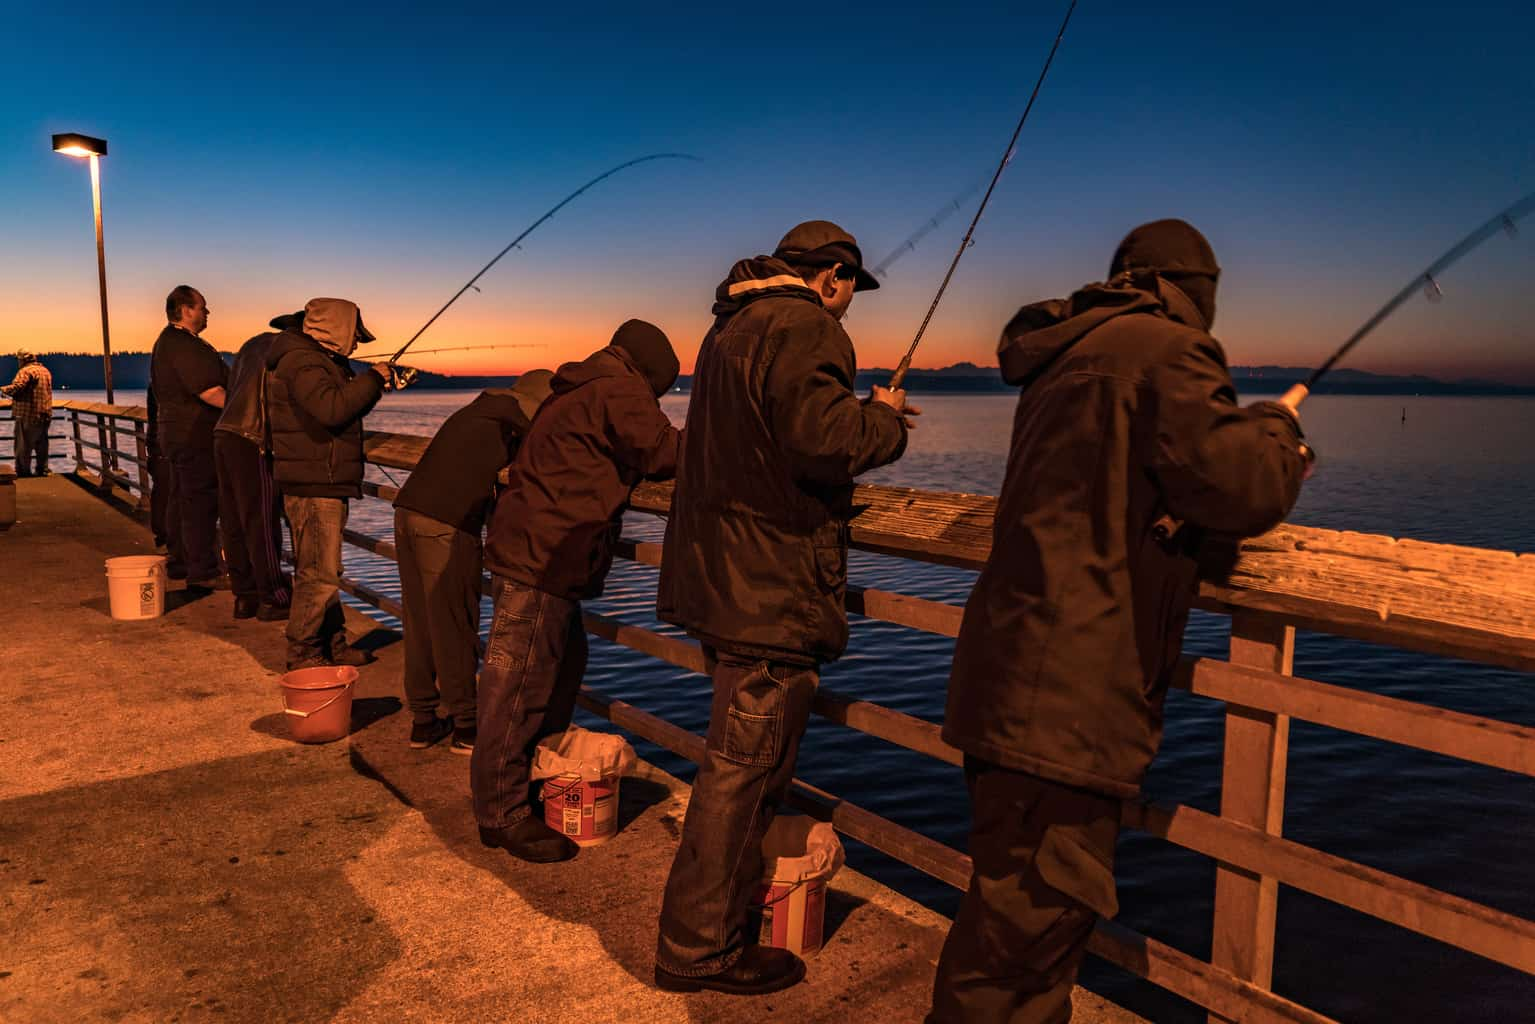 squid fishing from des moines beach pier in king county